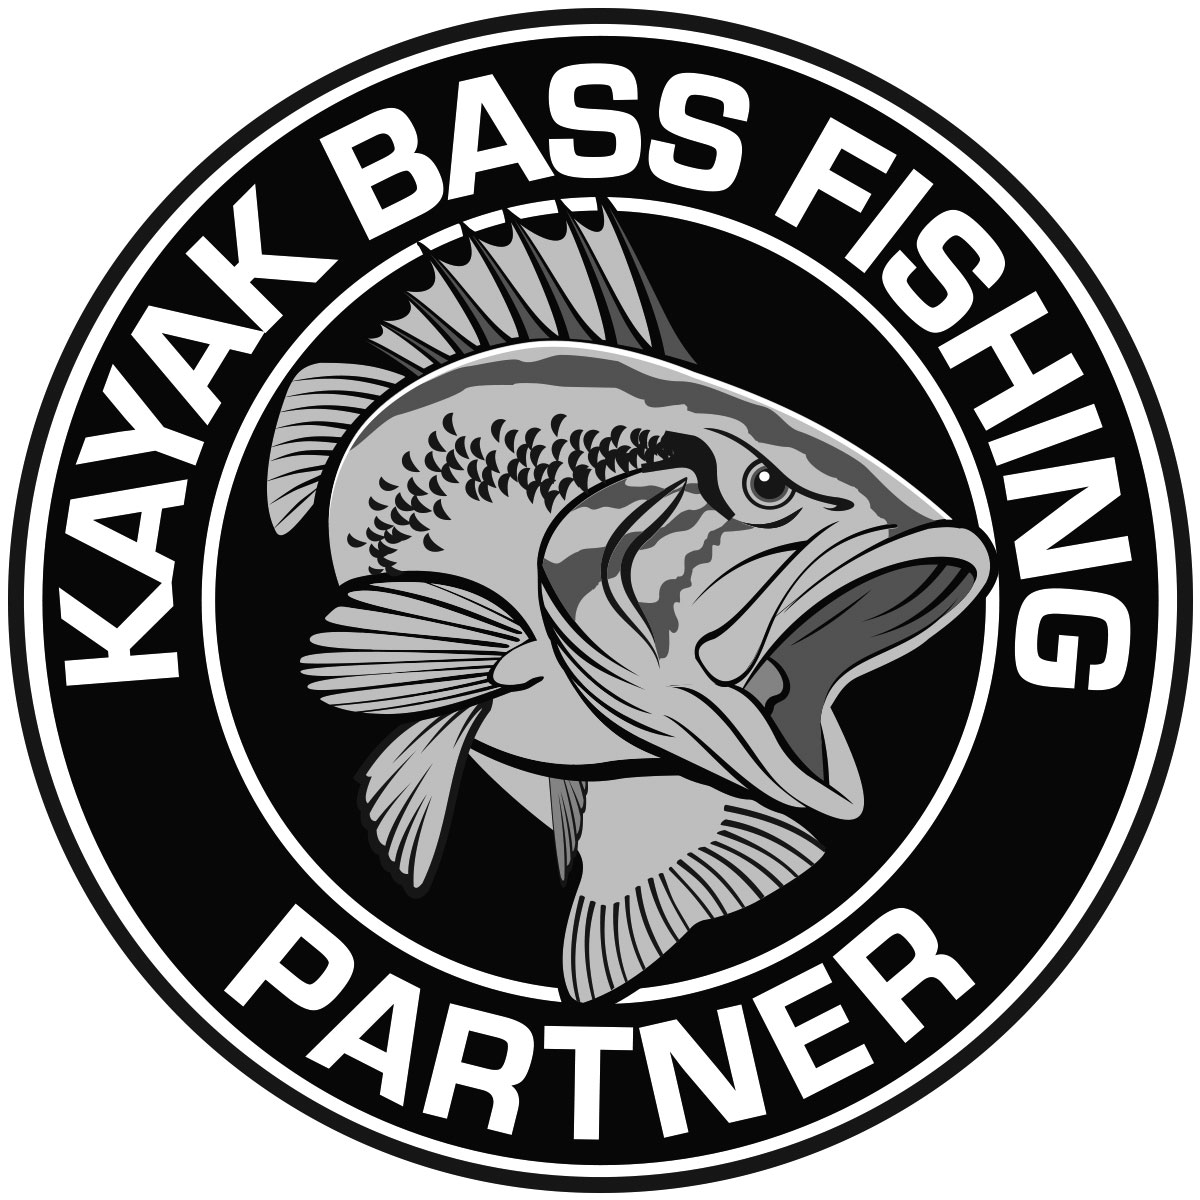 Kayak Bass Fishing Partner